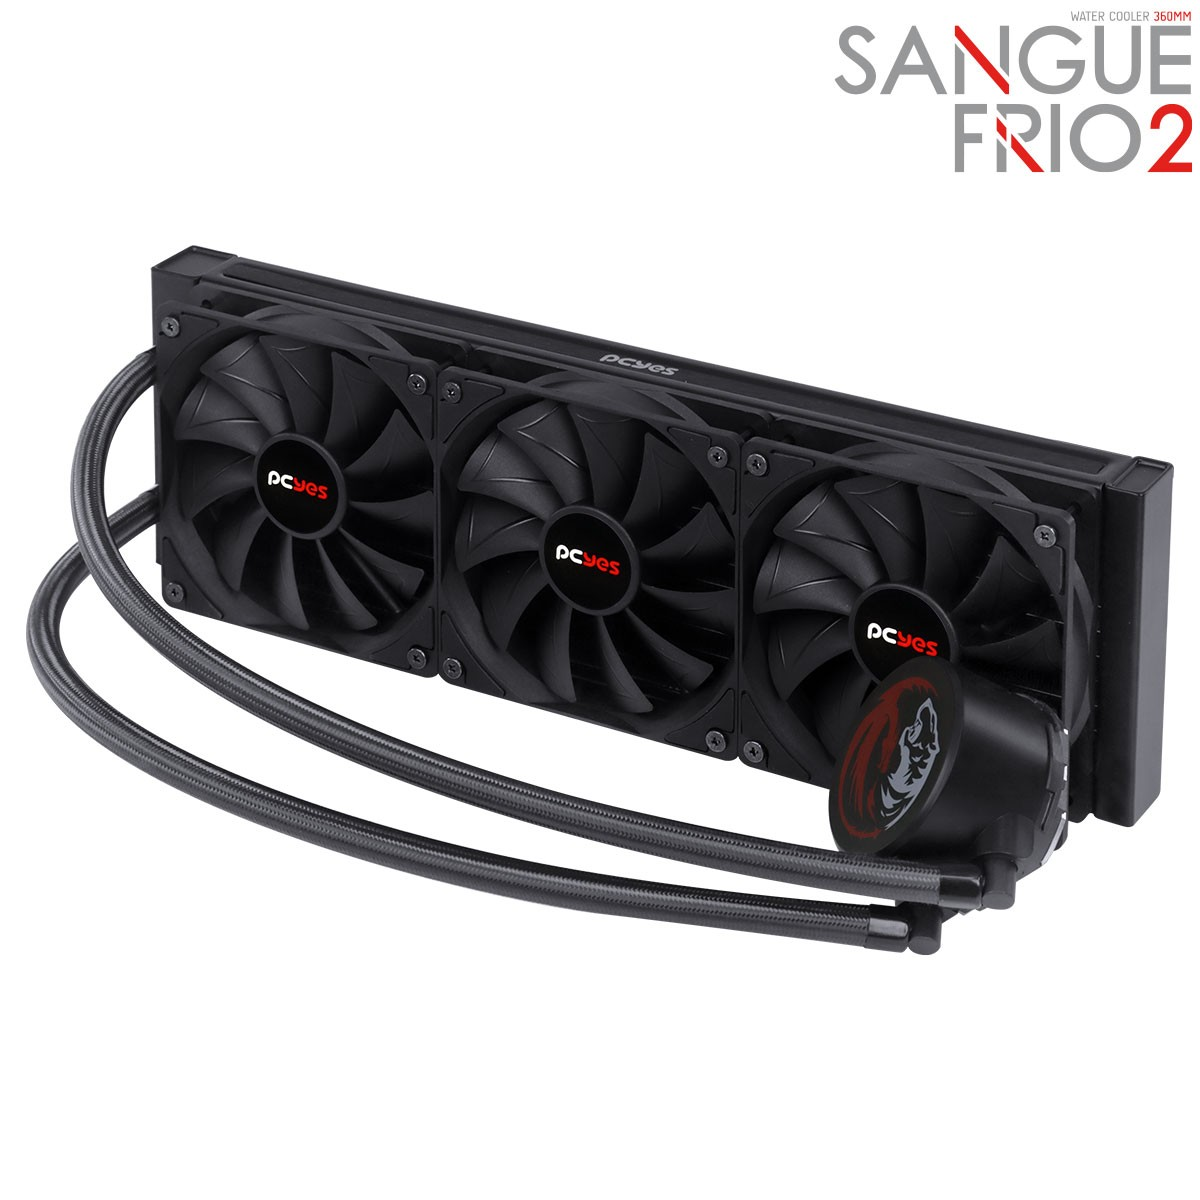 Water Cooler PCYes Sangue Frio 2, 360mm, Intel-AMD, PSF2360H60PTSL